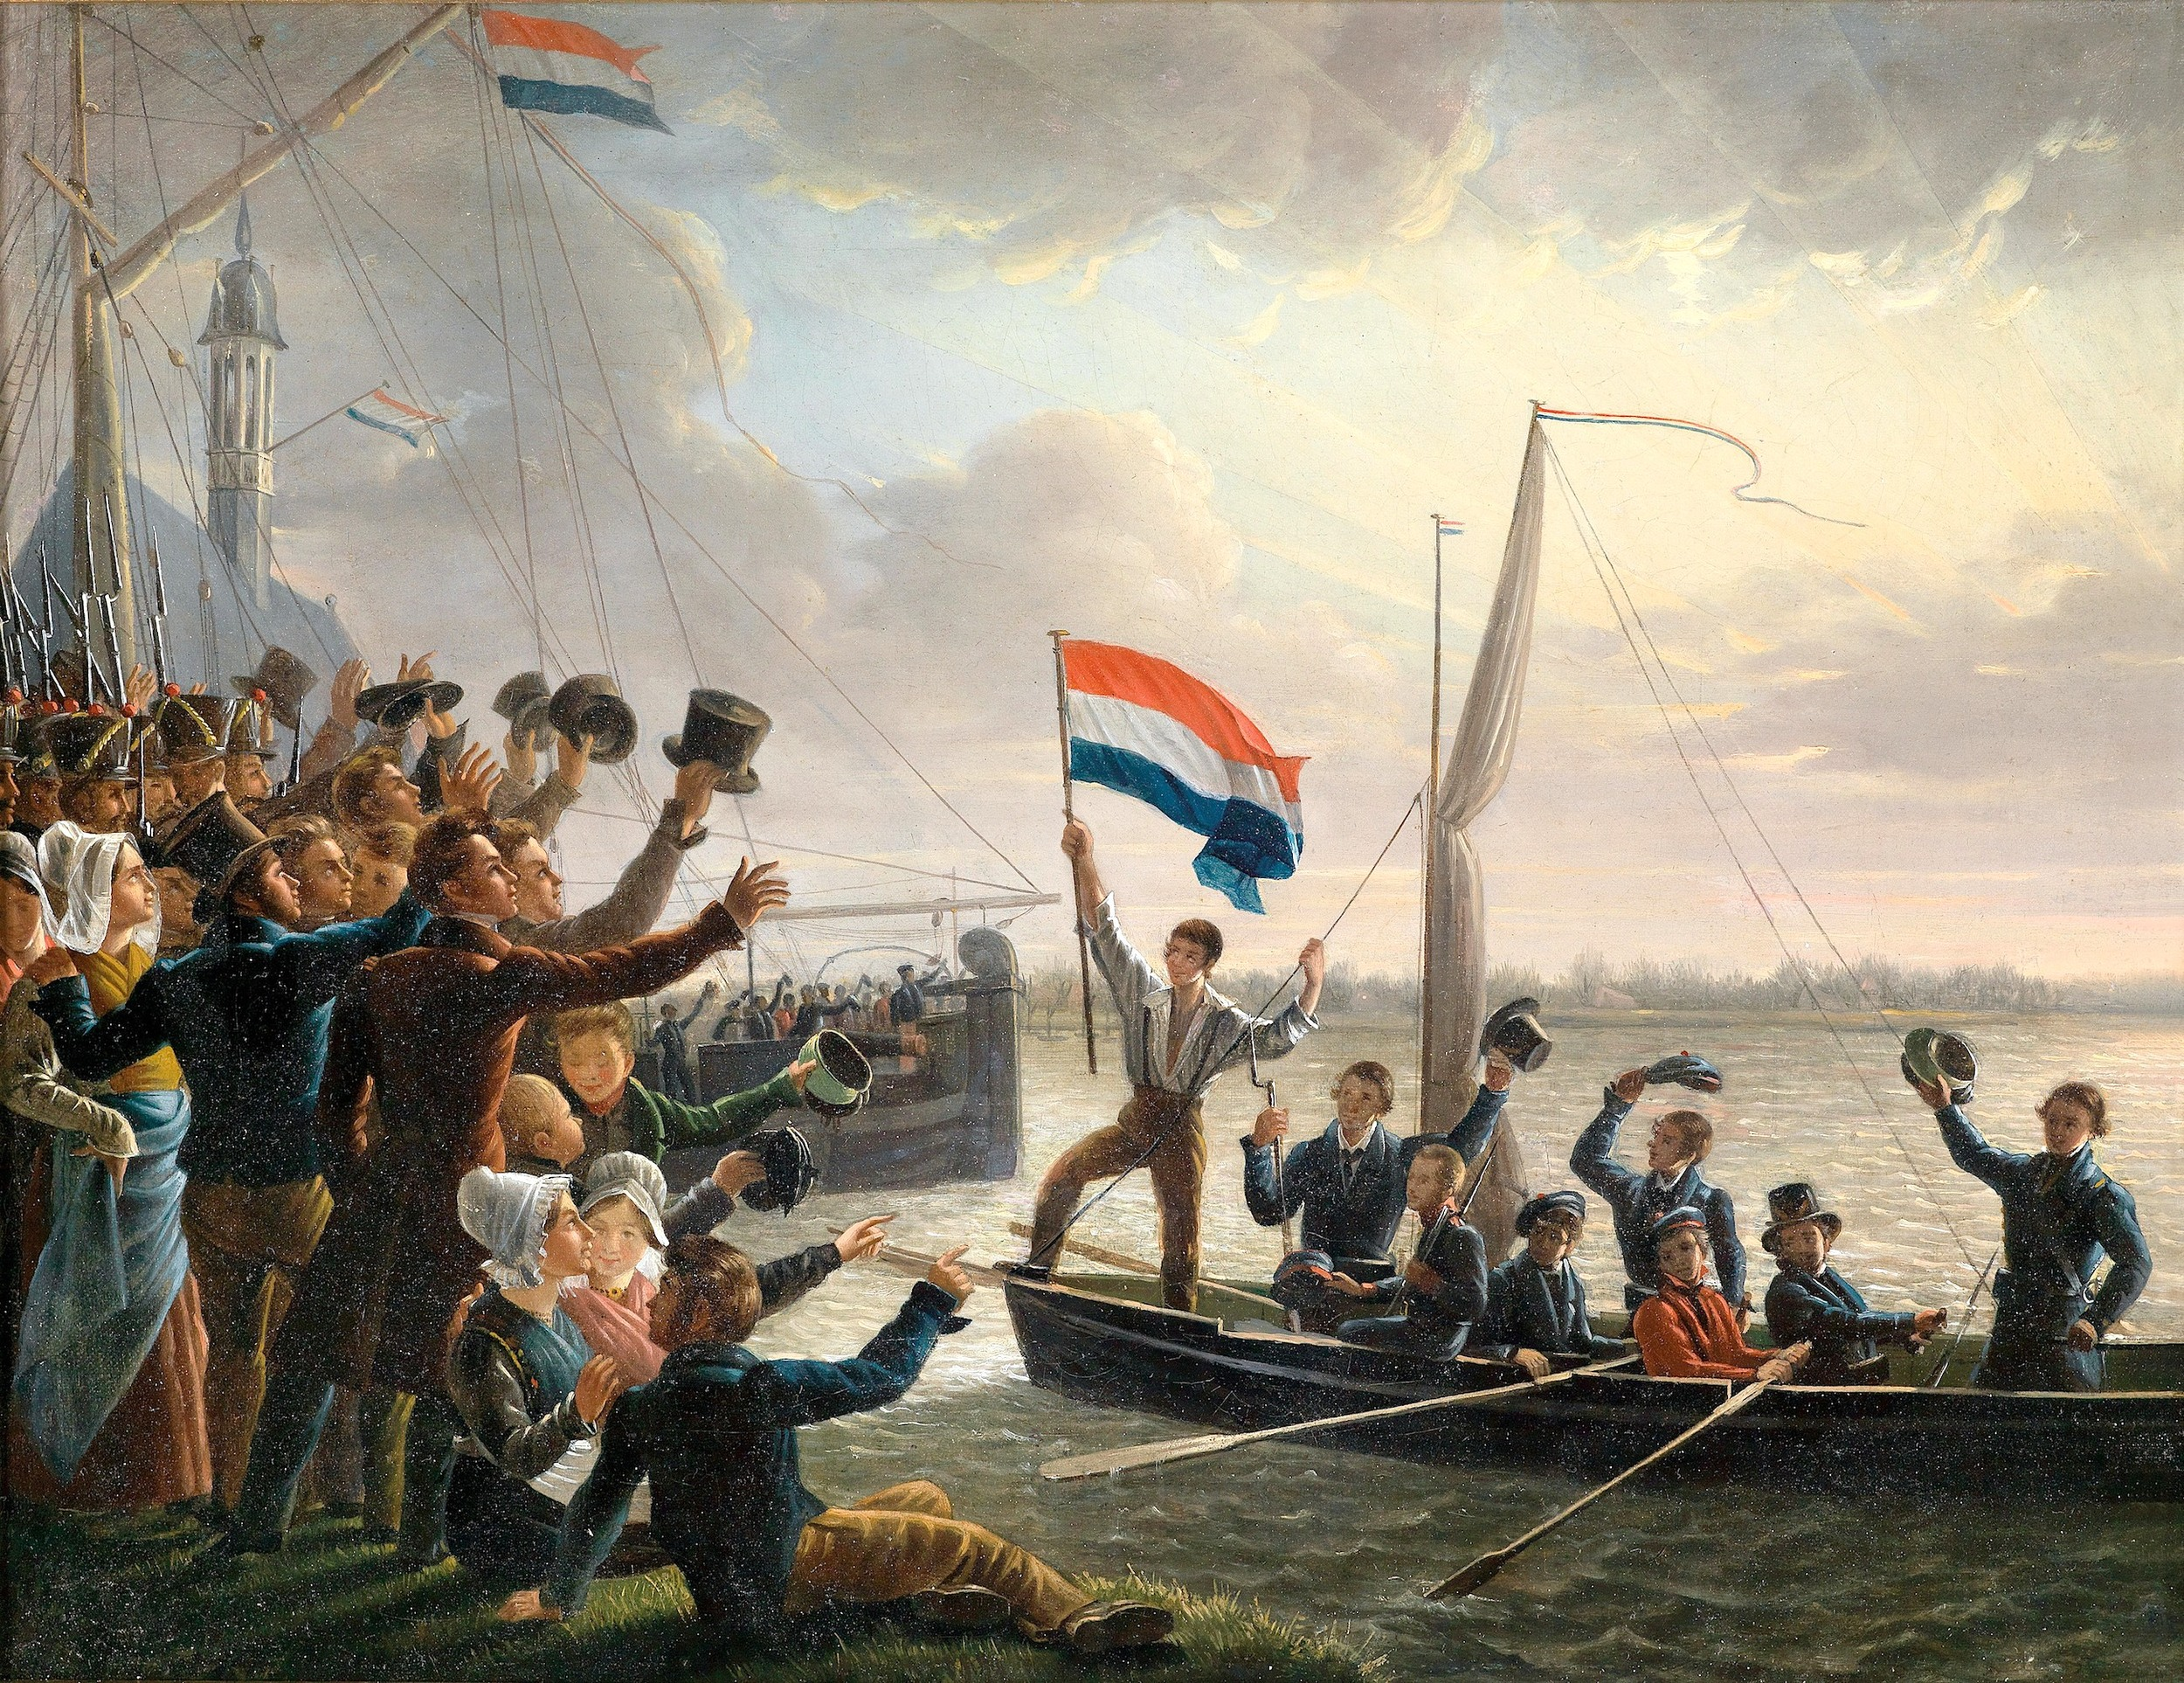 """Att. to  Dominicus Franciscus du Bois  (1800–1849)  The Return of Jacobus Hobein (1810–1888) on 19 March 1831  Oil on Canvas  29 x 37.5 cm, framed  Jacobus Hobein was a second class sailor who, on 19th of March 1831 and under strong enemy fire, rescued the Dutch flag and brought it back aboard his ship.  Compare to: """"The return of Jacobus Hobein on 19th March 1831"""", in the naval museum (Scheepvaartmuseum), Amsterdam, Inv. no. A0112/2"""